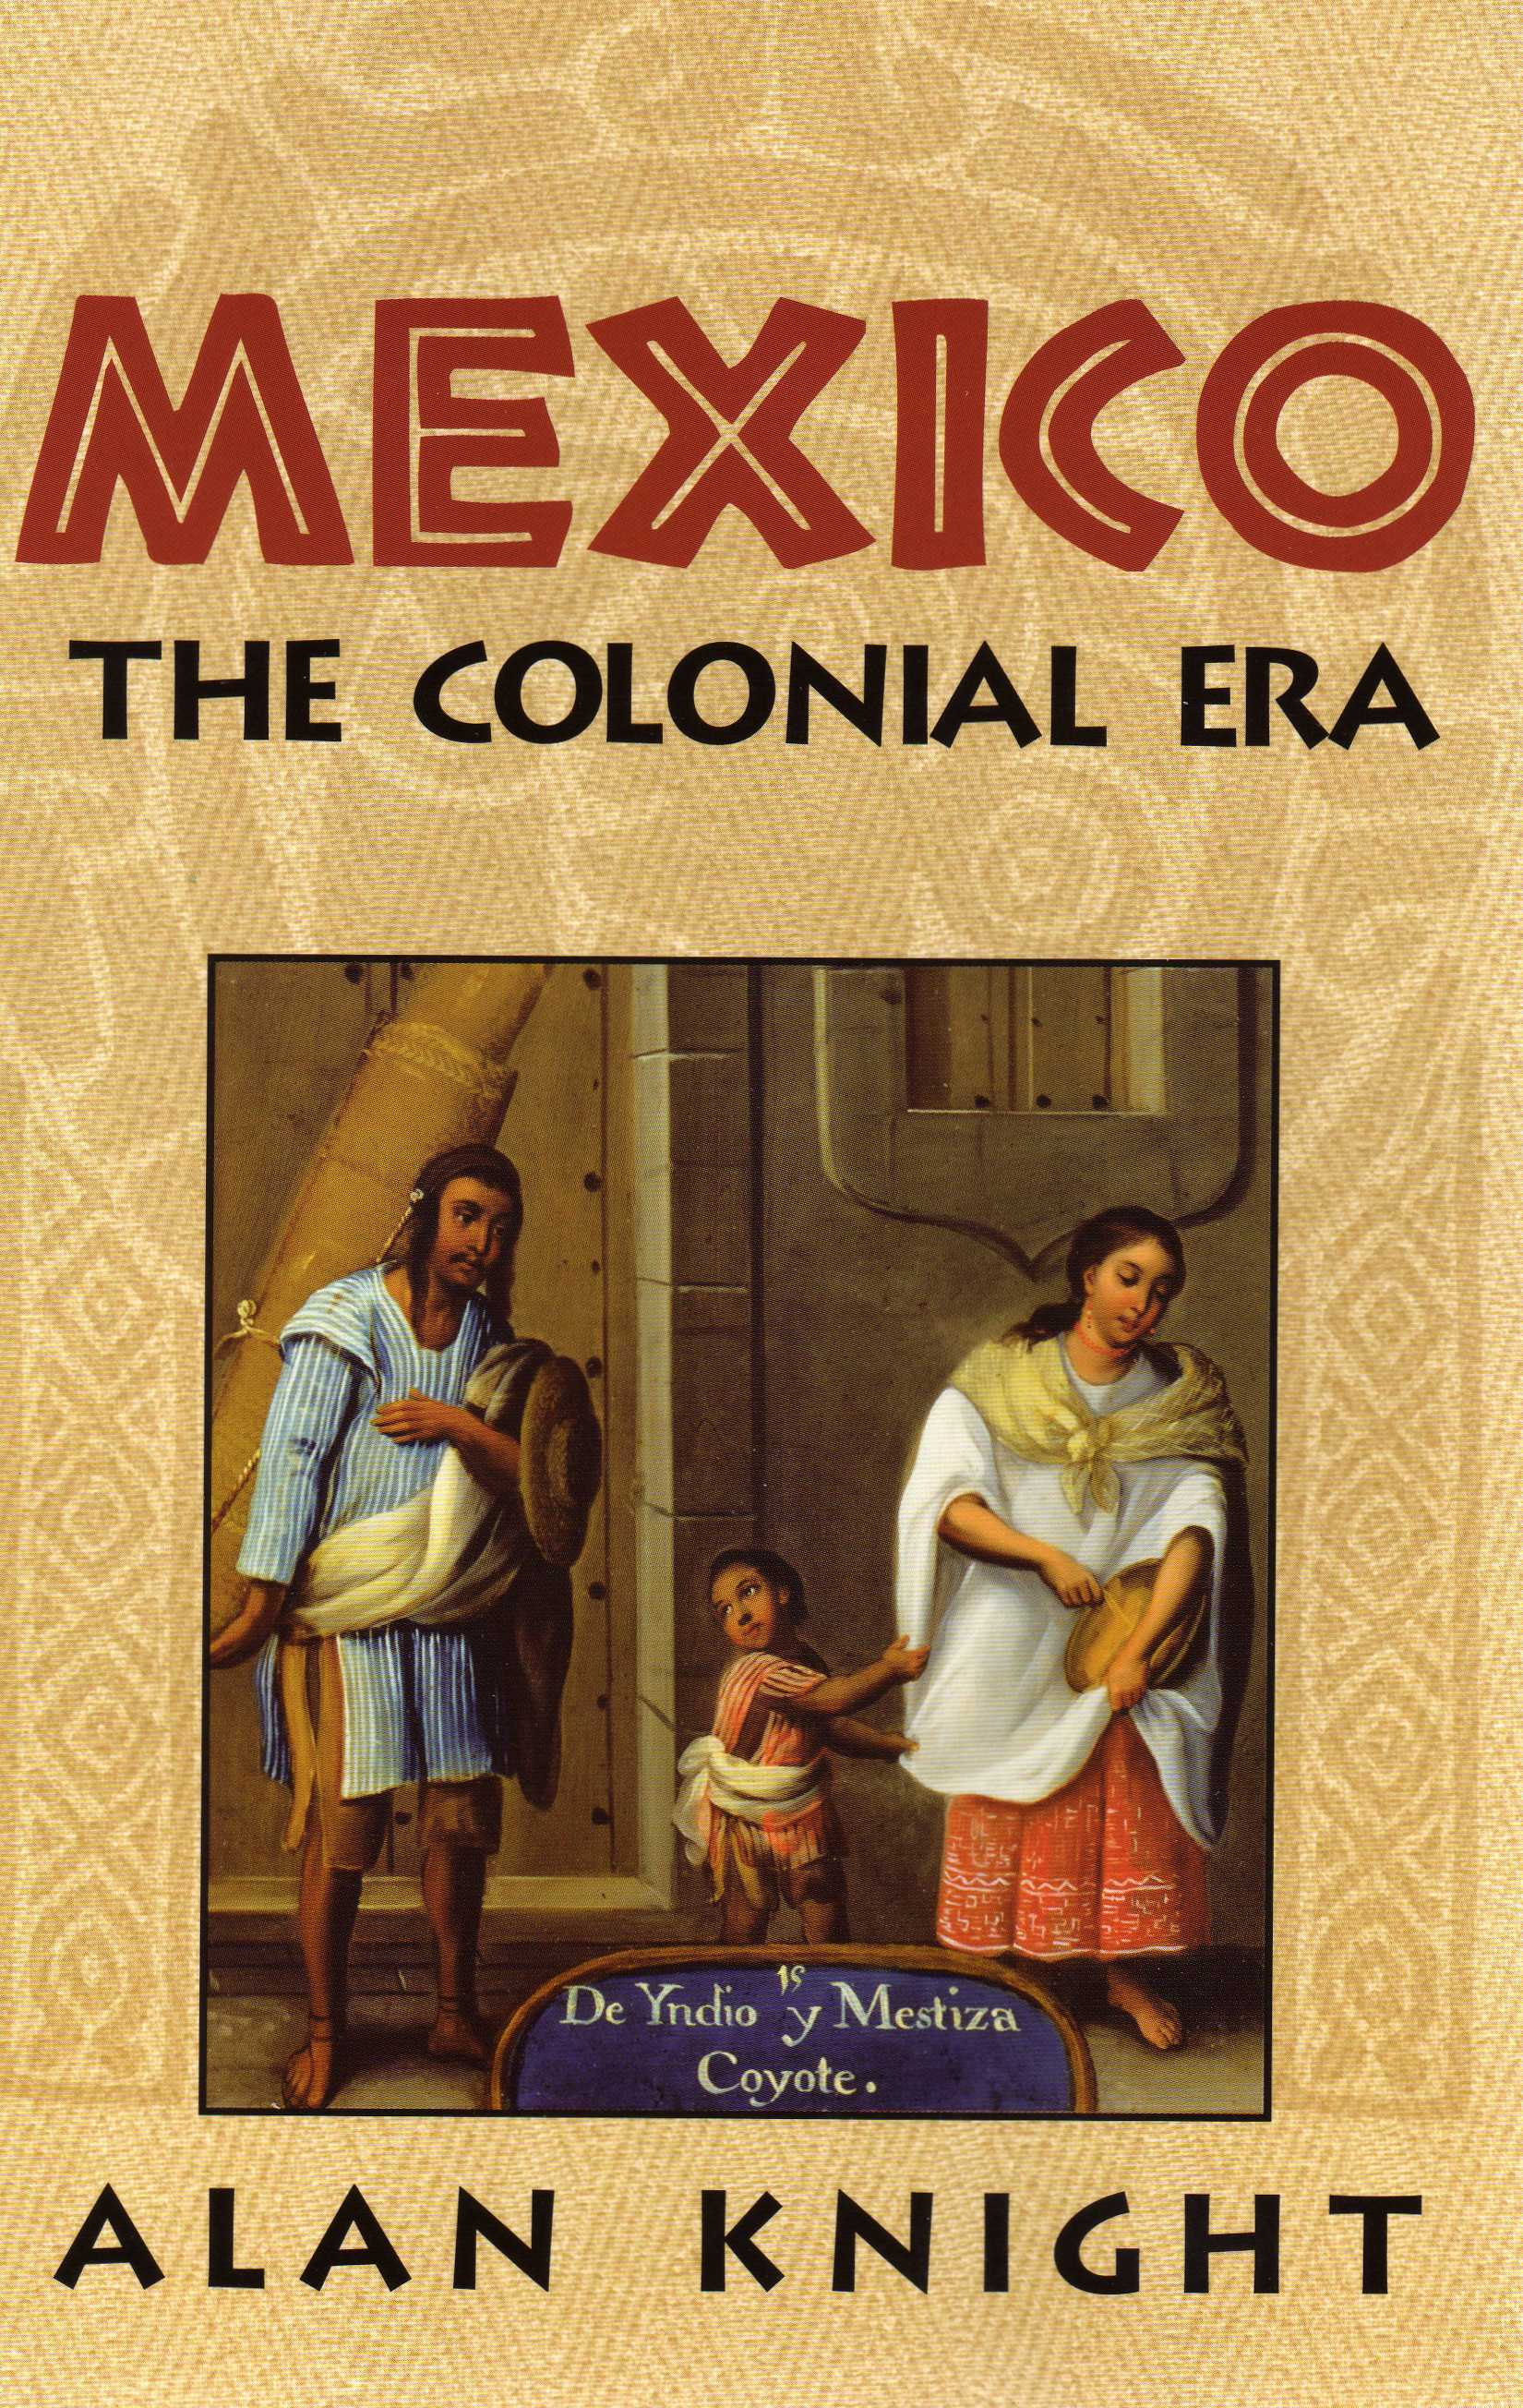 005 Mexico Colonia Era Knight1 Mexican Essay Formidable Does Mean American War Topics Full